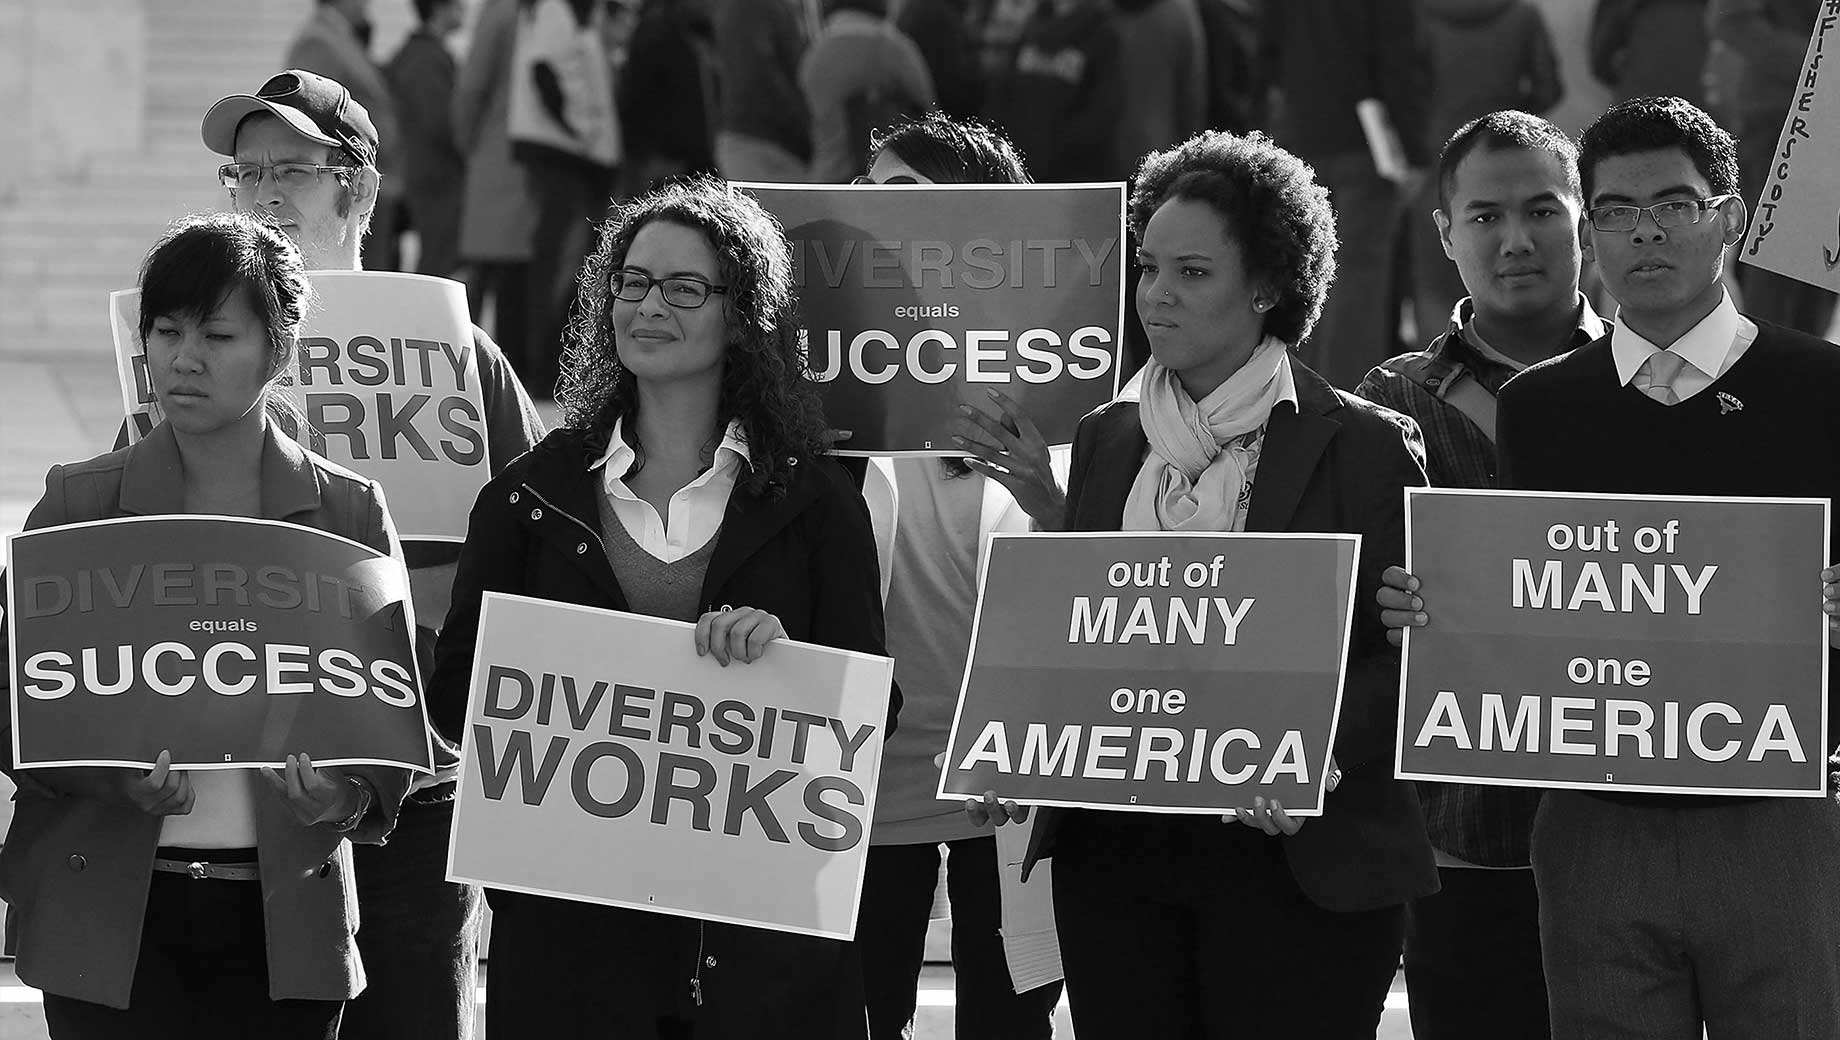 Americans' Support for Affirmative Action Programs Rises